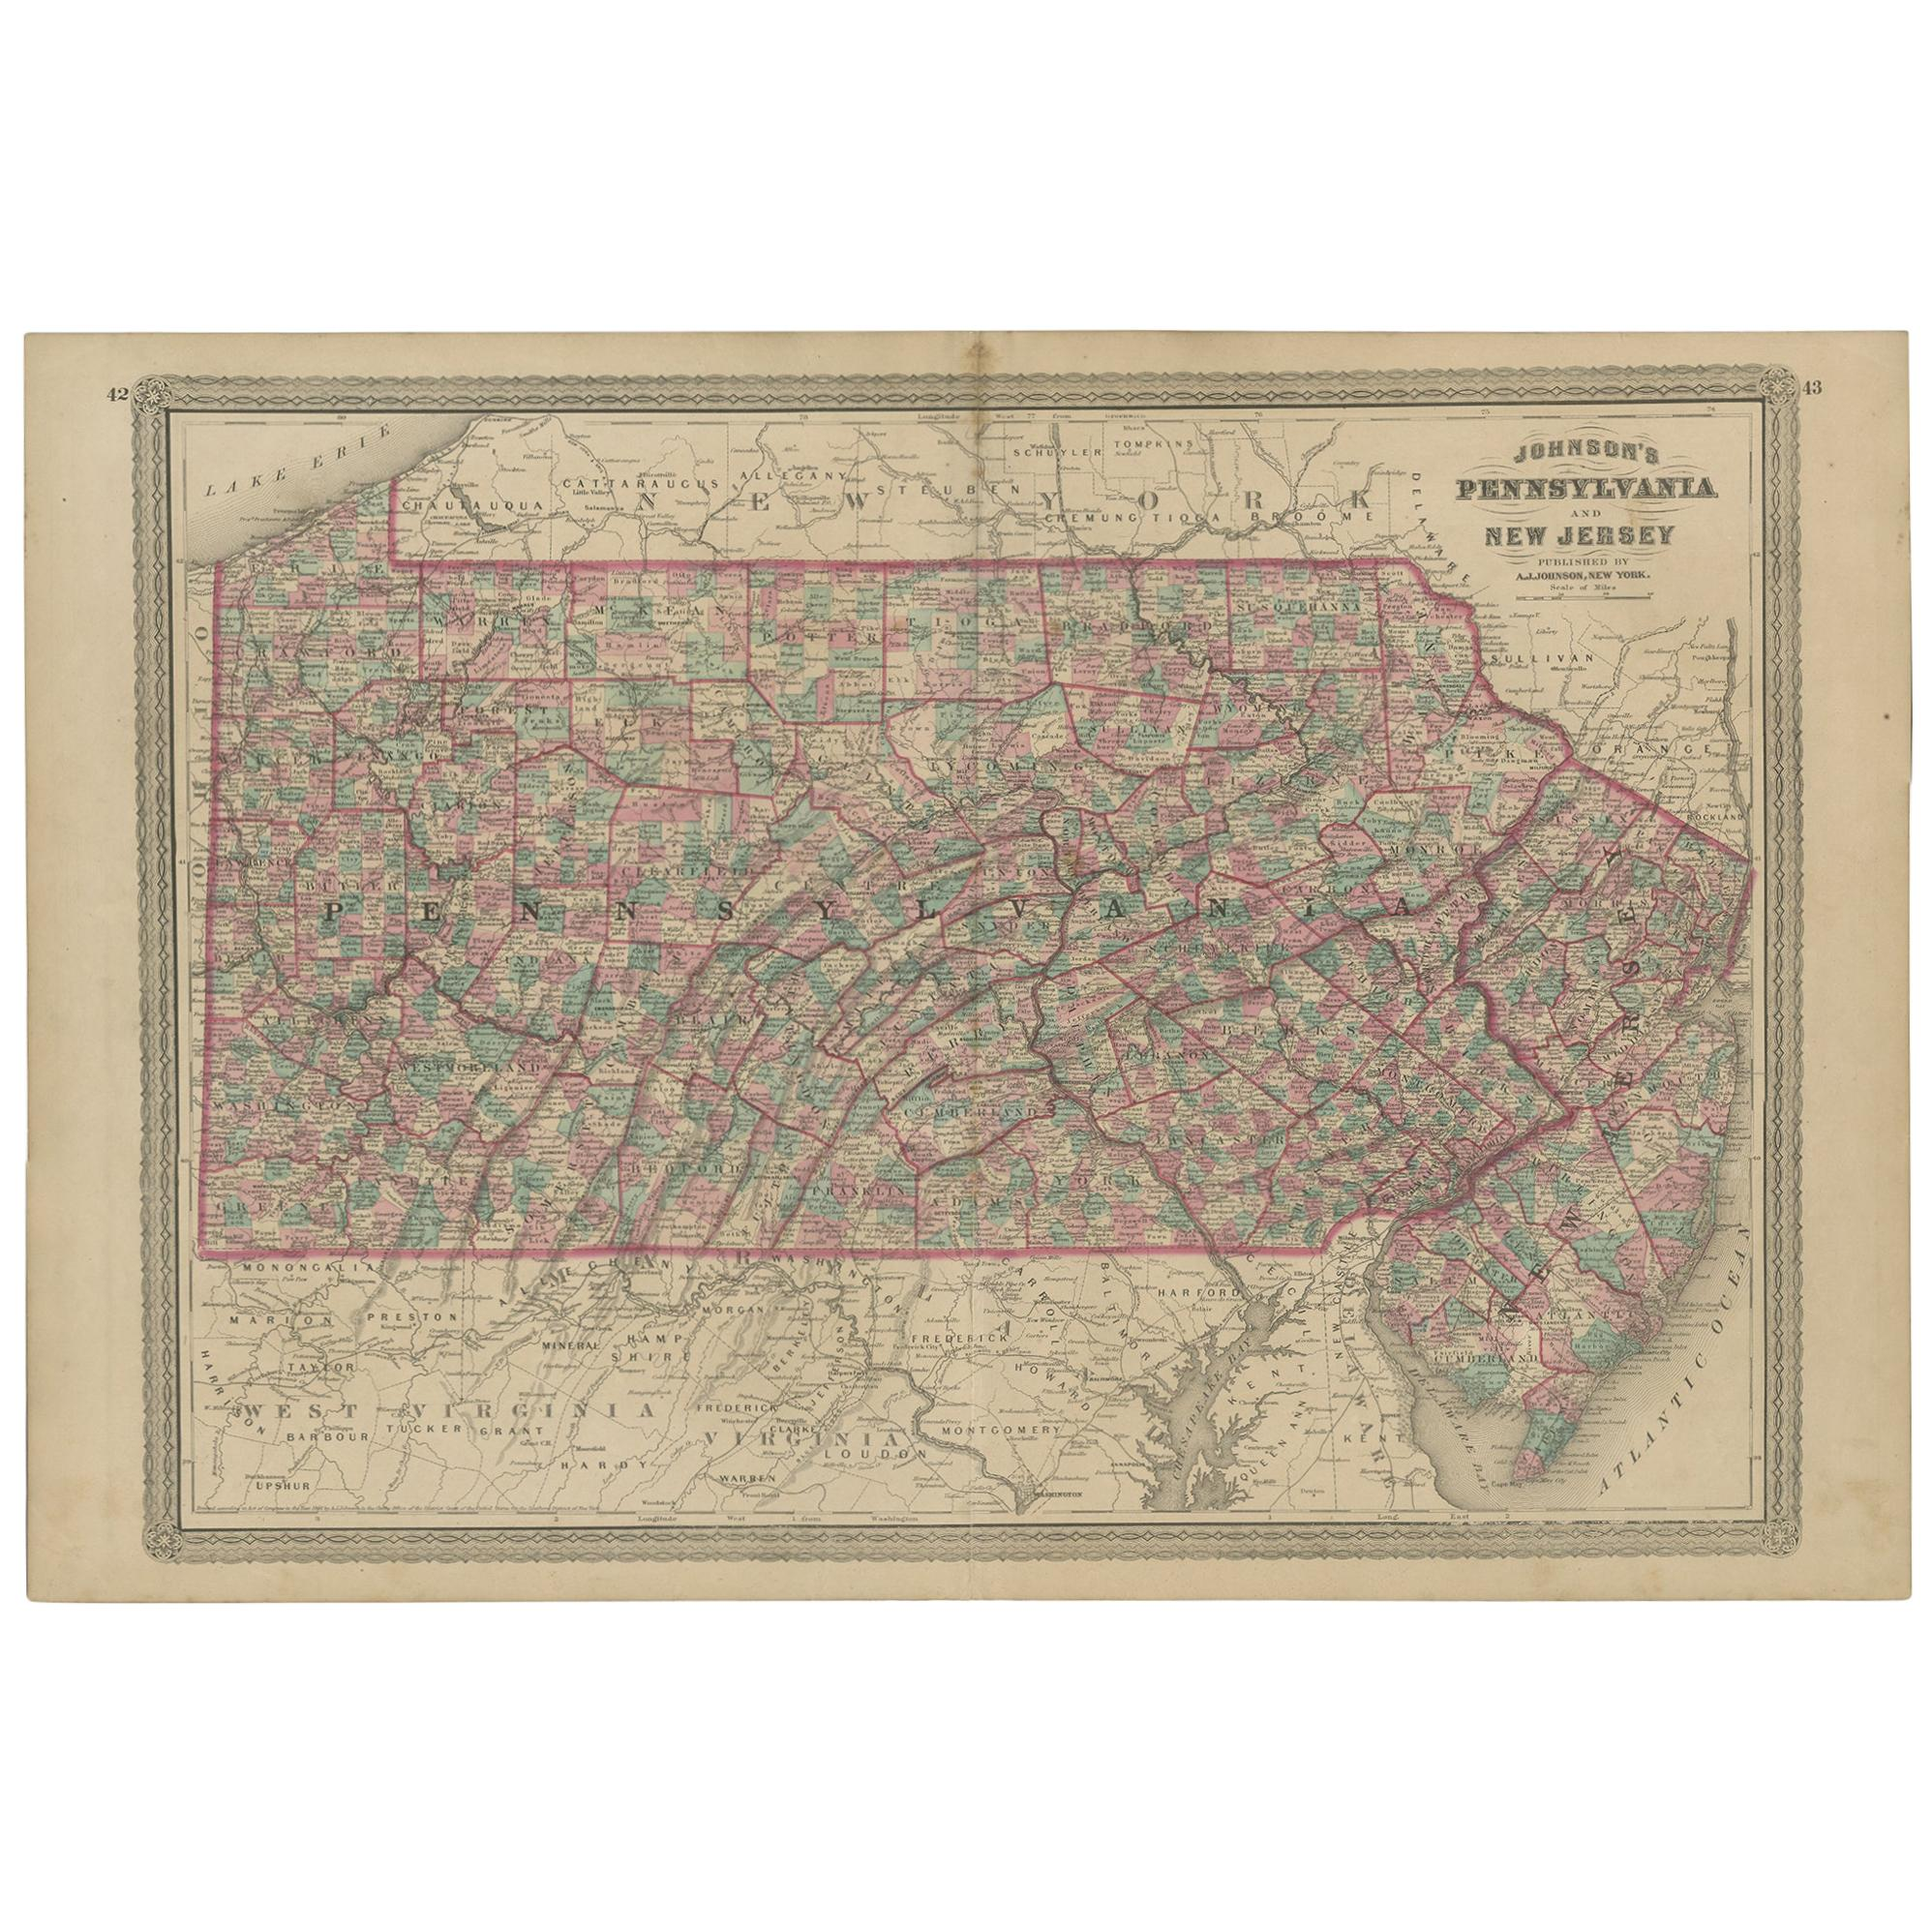 Antique Map of Pennsylvania and New Jersey by Johnson, 1872